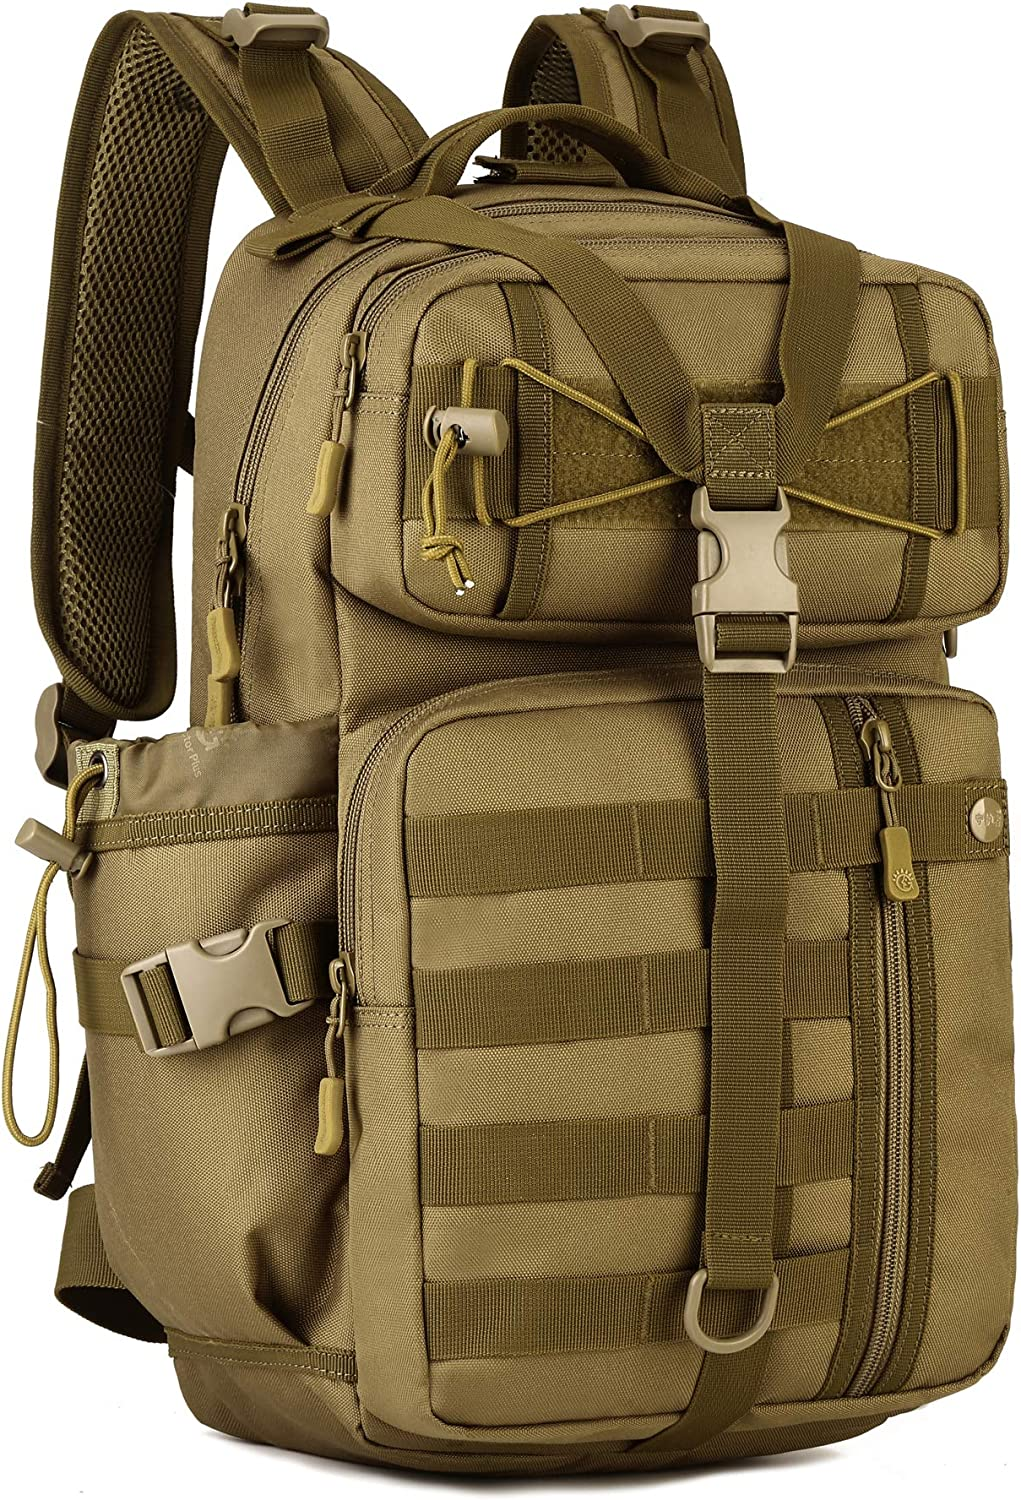 Yakmoo Assault Backpack Waterproof Tactical Military Style Daypack Molle System Student Bag Rucksack 30L for Outdoors